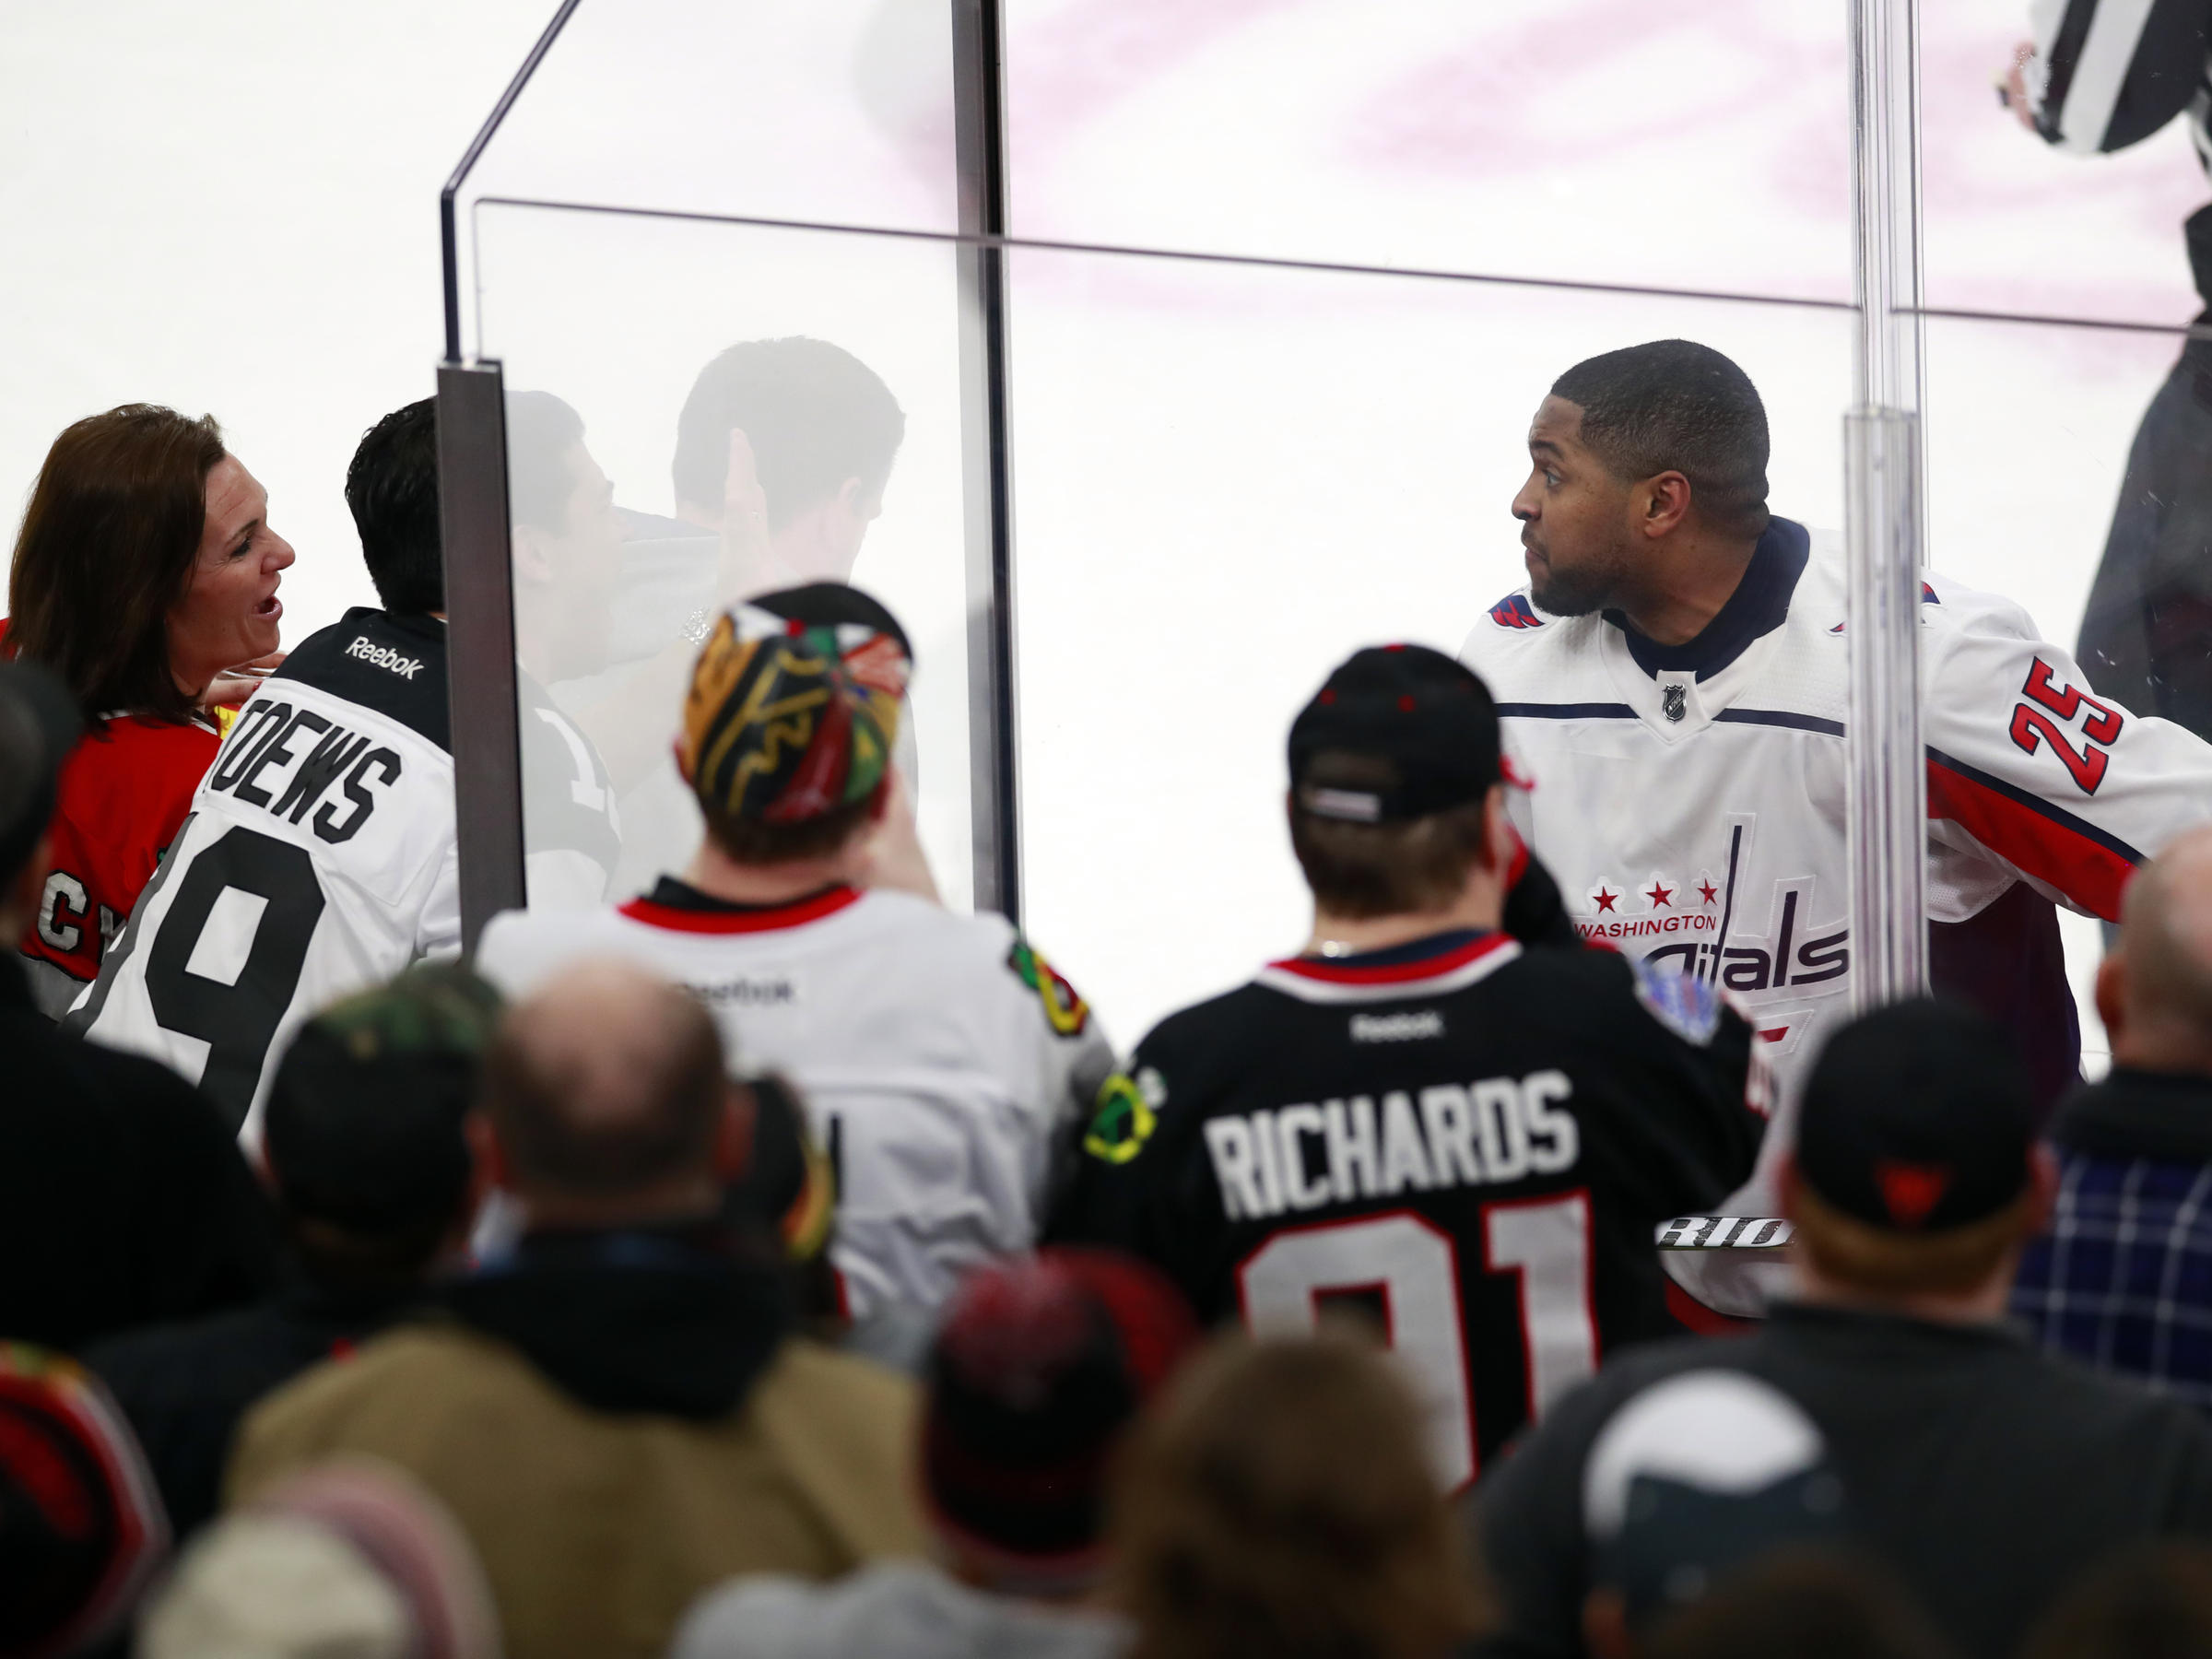 Washington Capitals right wing Devante Smith-Pelly (25) approaches Chicago  Blackhawks fans who were racially taunting him during a game in Chicago. 5458b1c0870